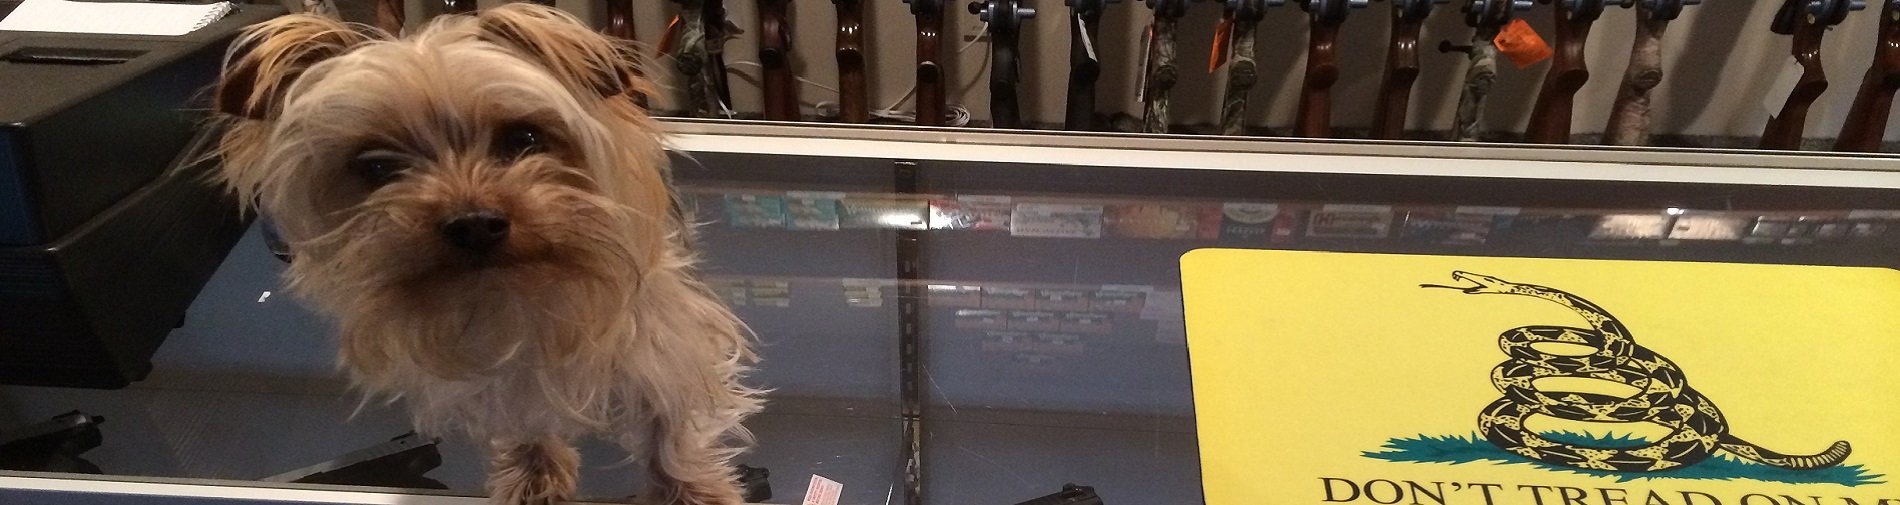 A small dog standing on the front counter of Shawsheen Firearms & Gunsmithing in Billerica, MA